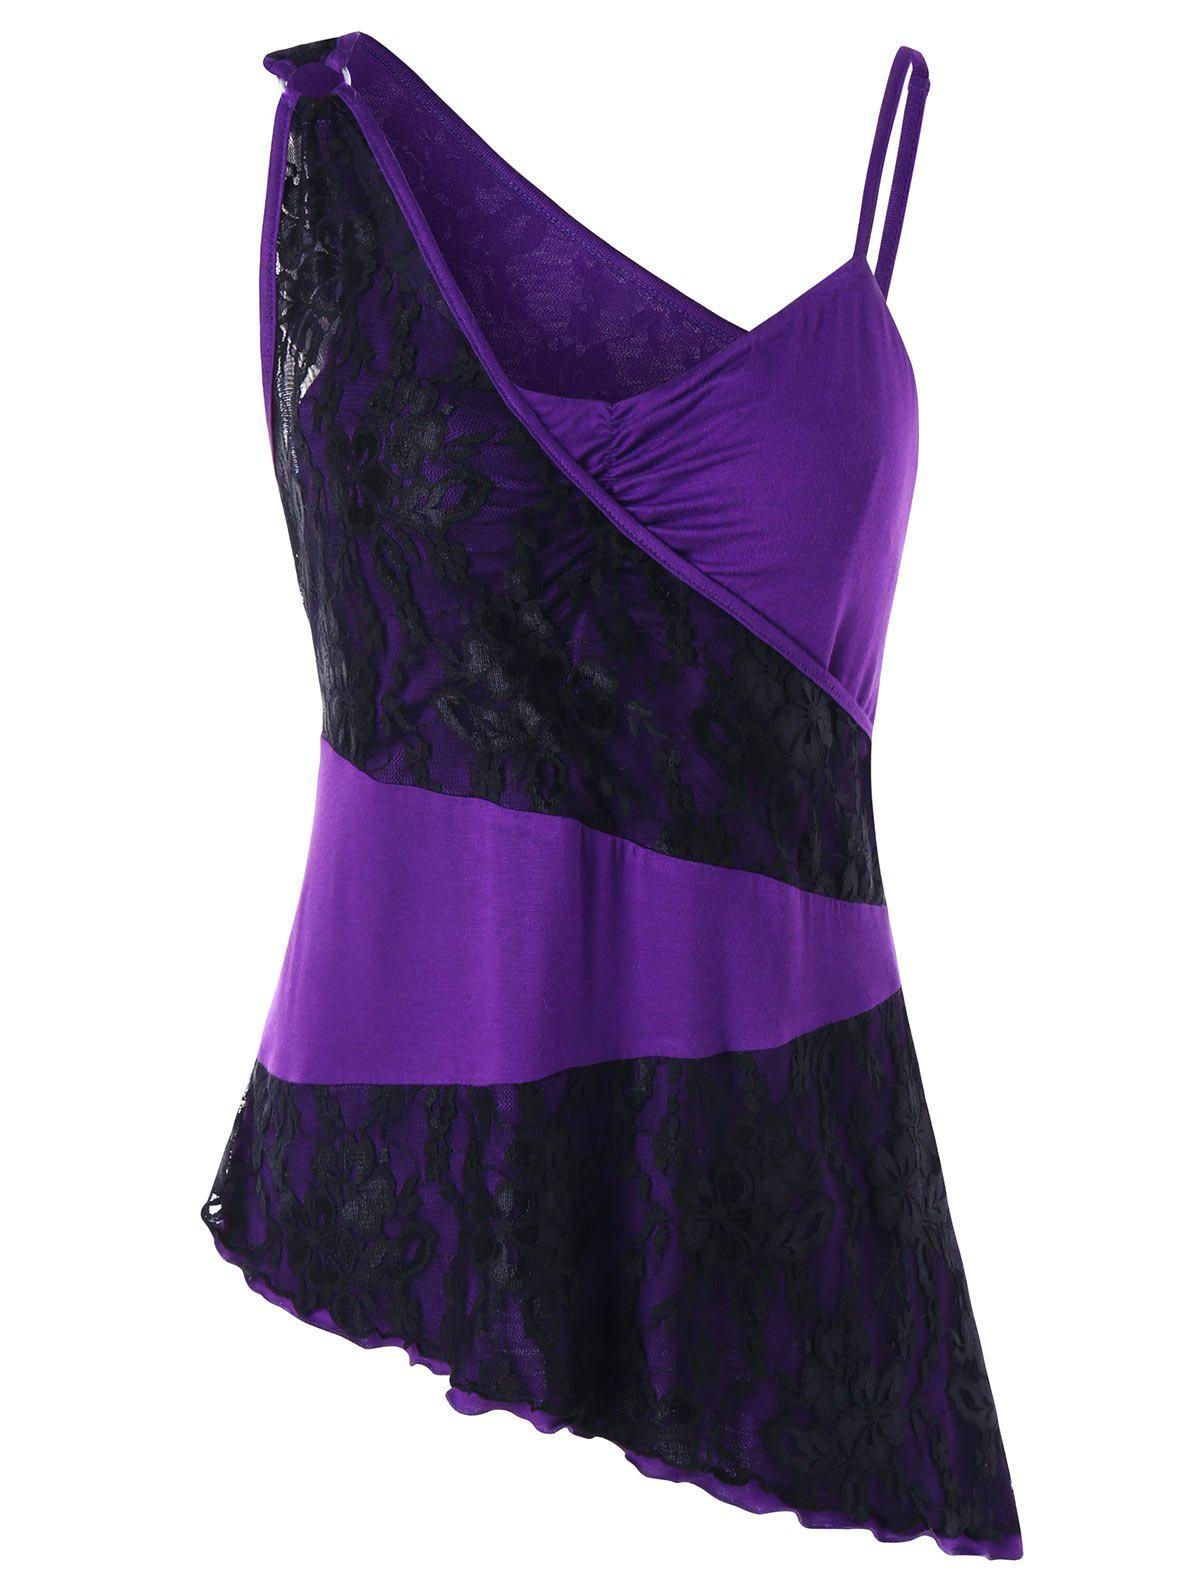 Lace Panel Plus Size One Shoulder Swing Top - BLACK/PURPLE 5XL